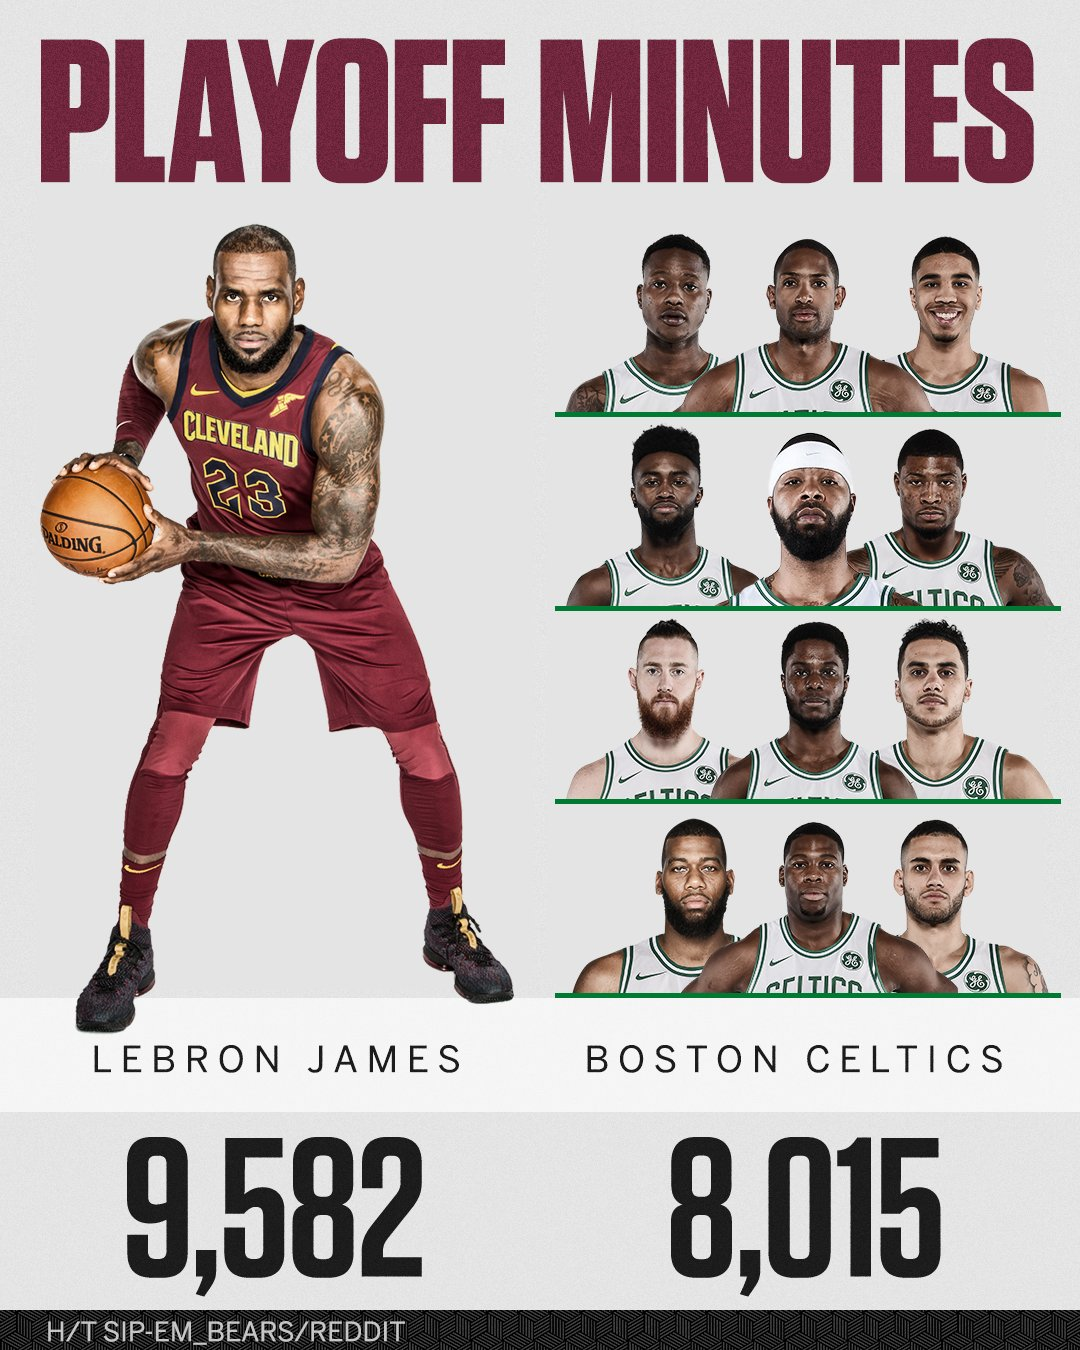 LeBron has played more career postseason minutes than the entire Celtics playoff roster combined. https://t.co/j5foF4Qrc4